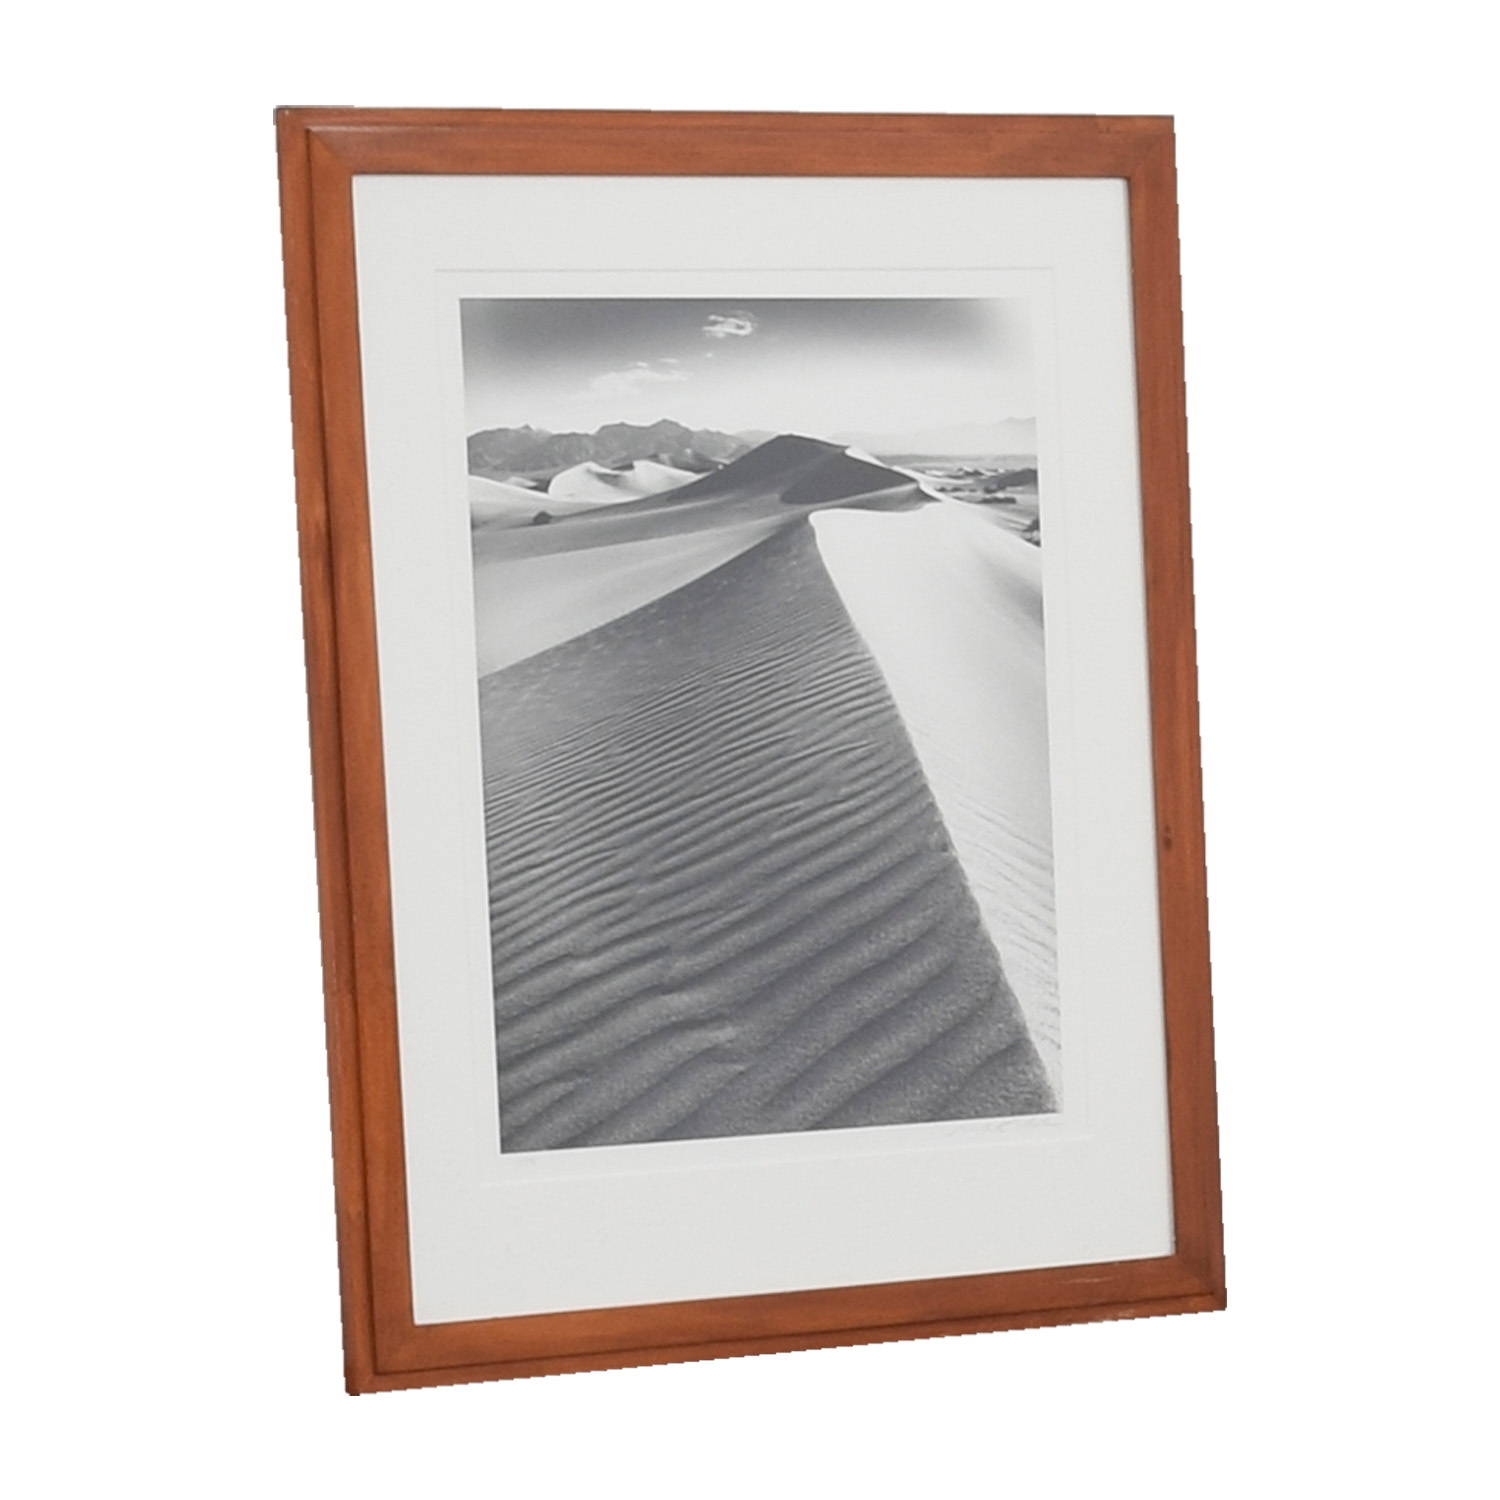 Desert Sand Framed Artwork on sale